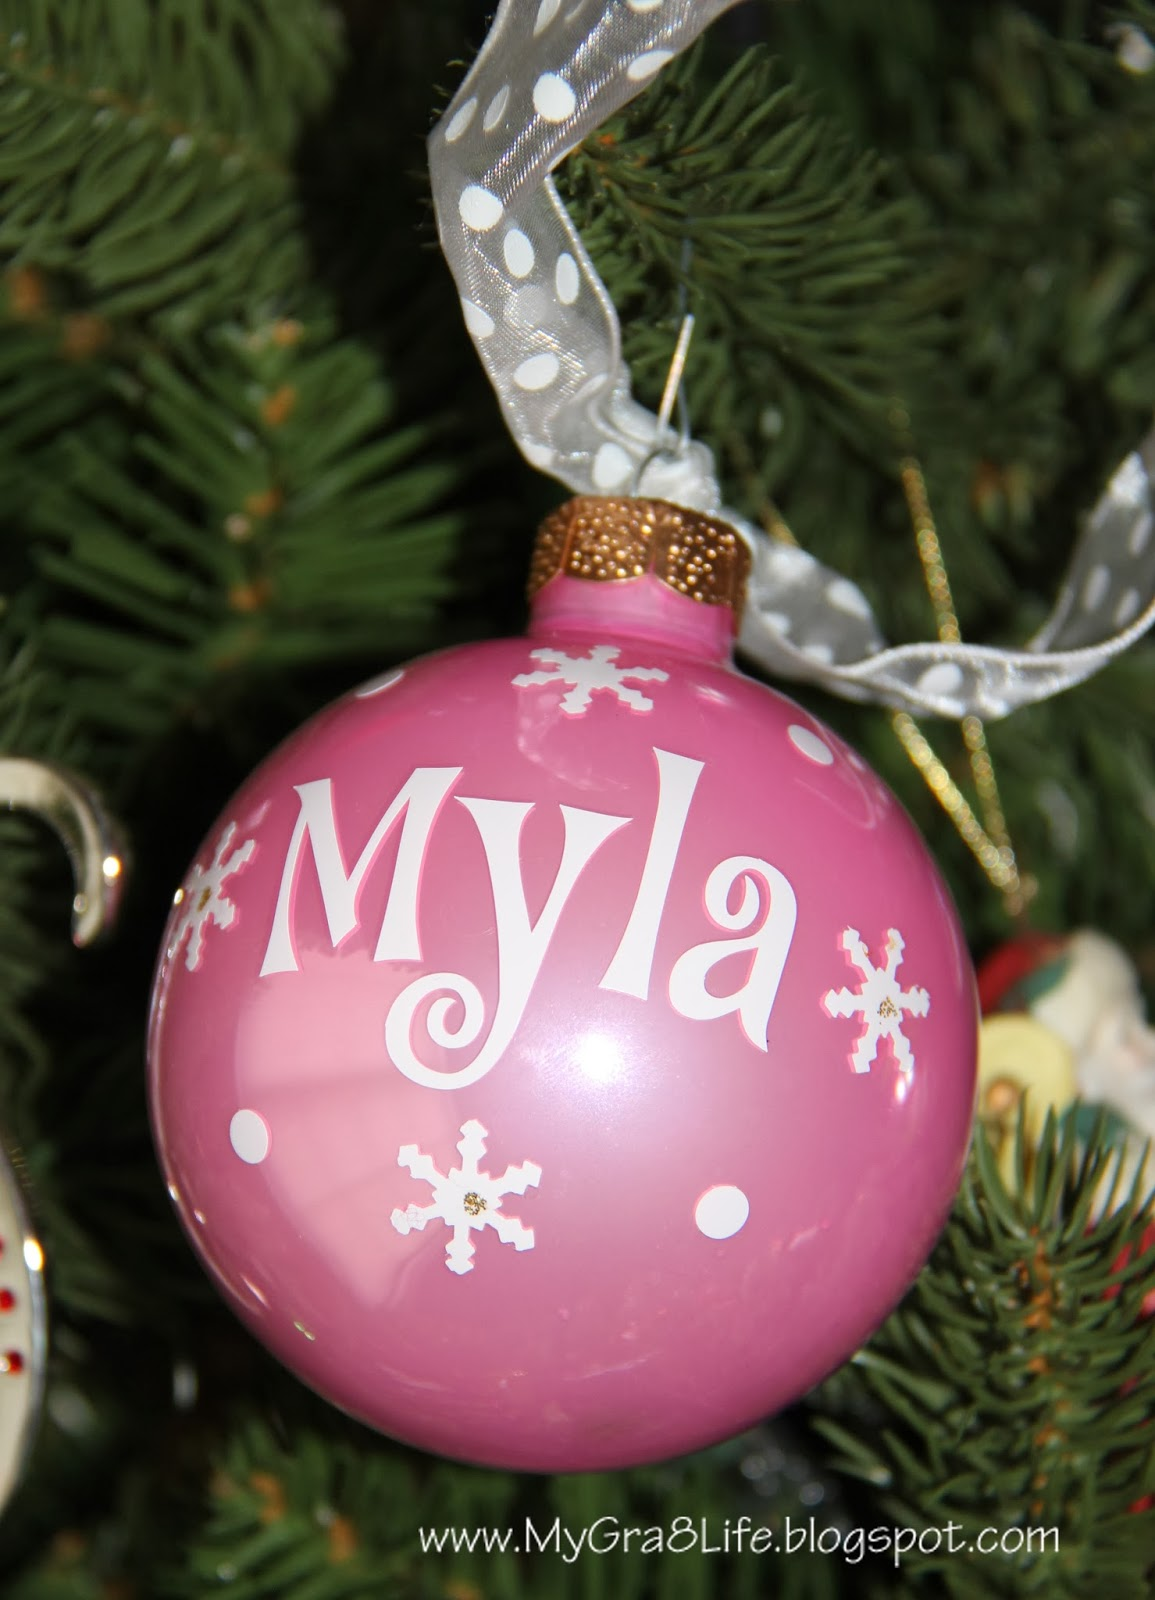 Name christmas ornaments - When I Got The First Set Of Ornaments I Found Them On Etsy At A Store Called Personalize 4 You The Shop Owner Created Beautiful Ornaments For Me